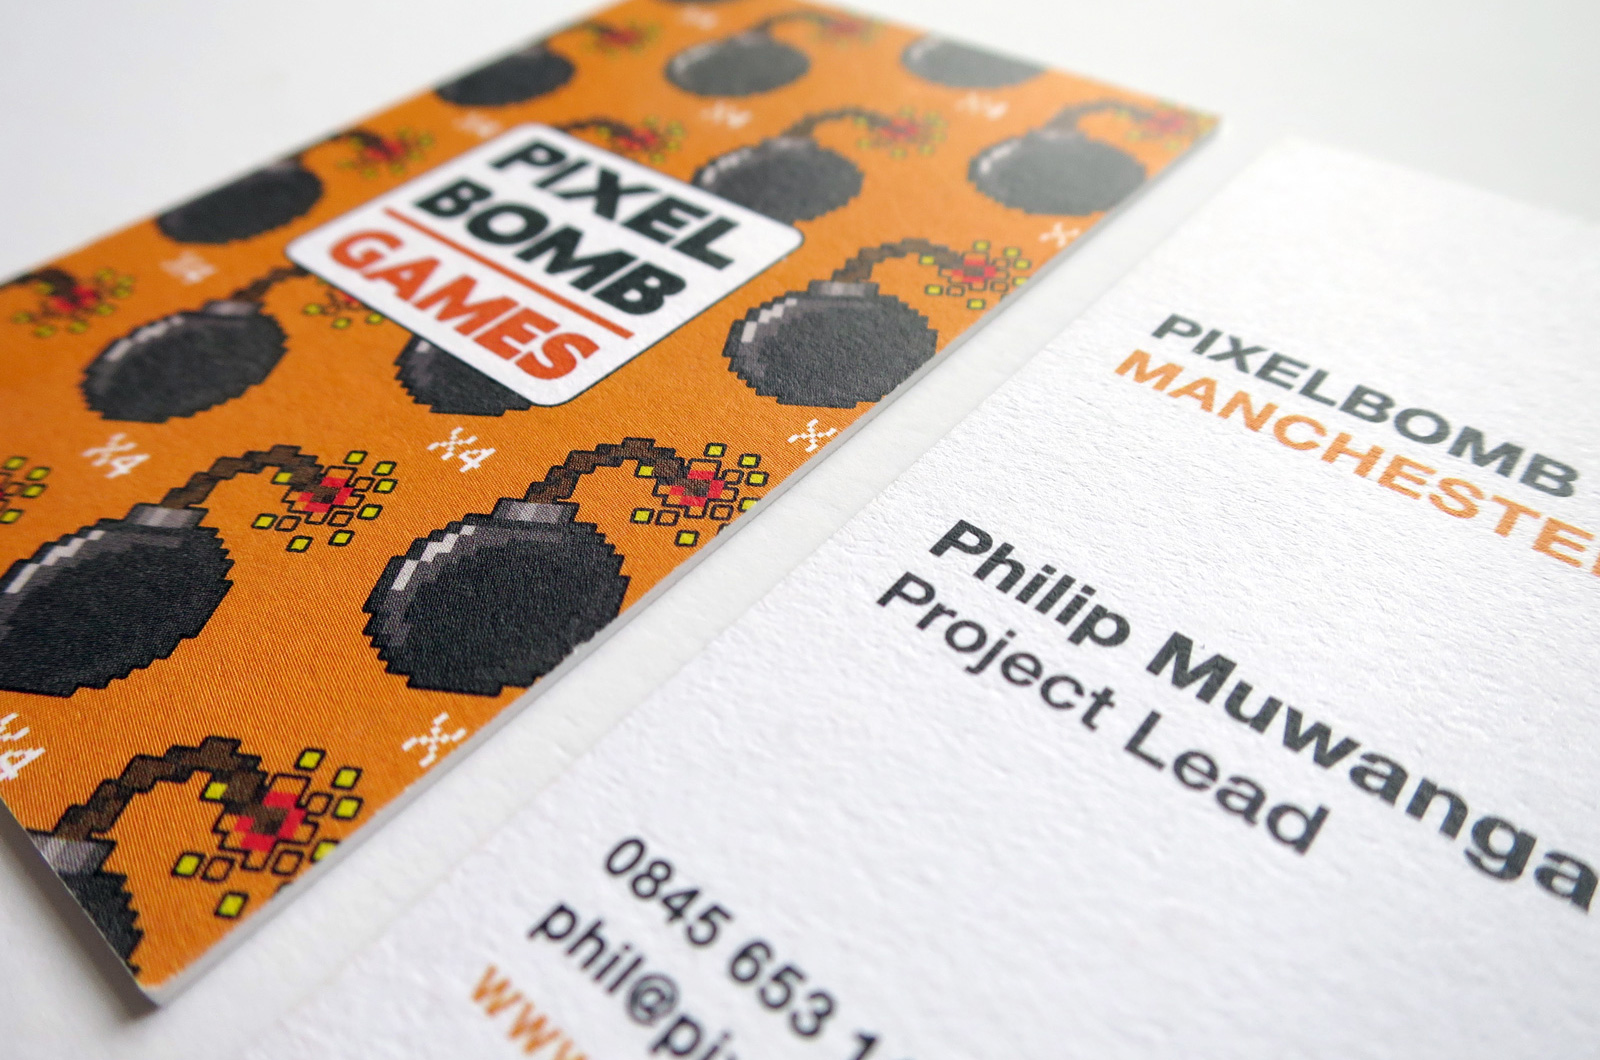 Pixelbomb Games Business Cards 01